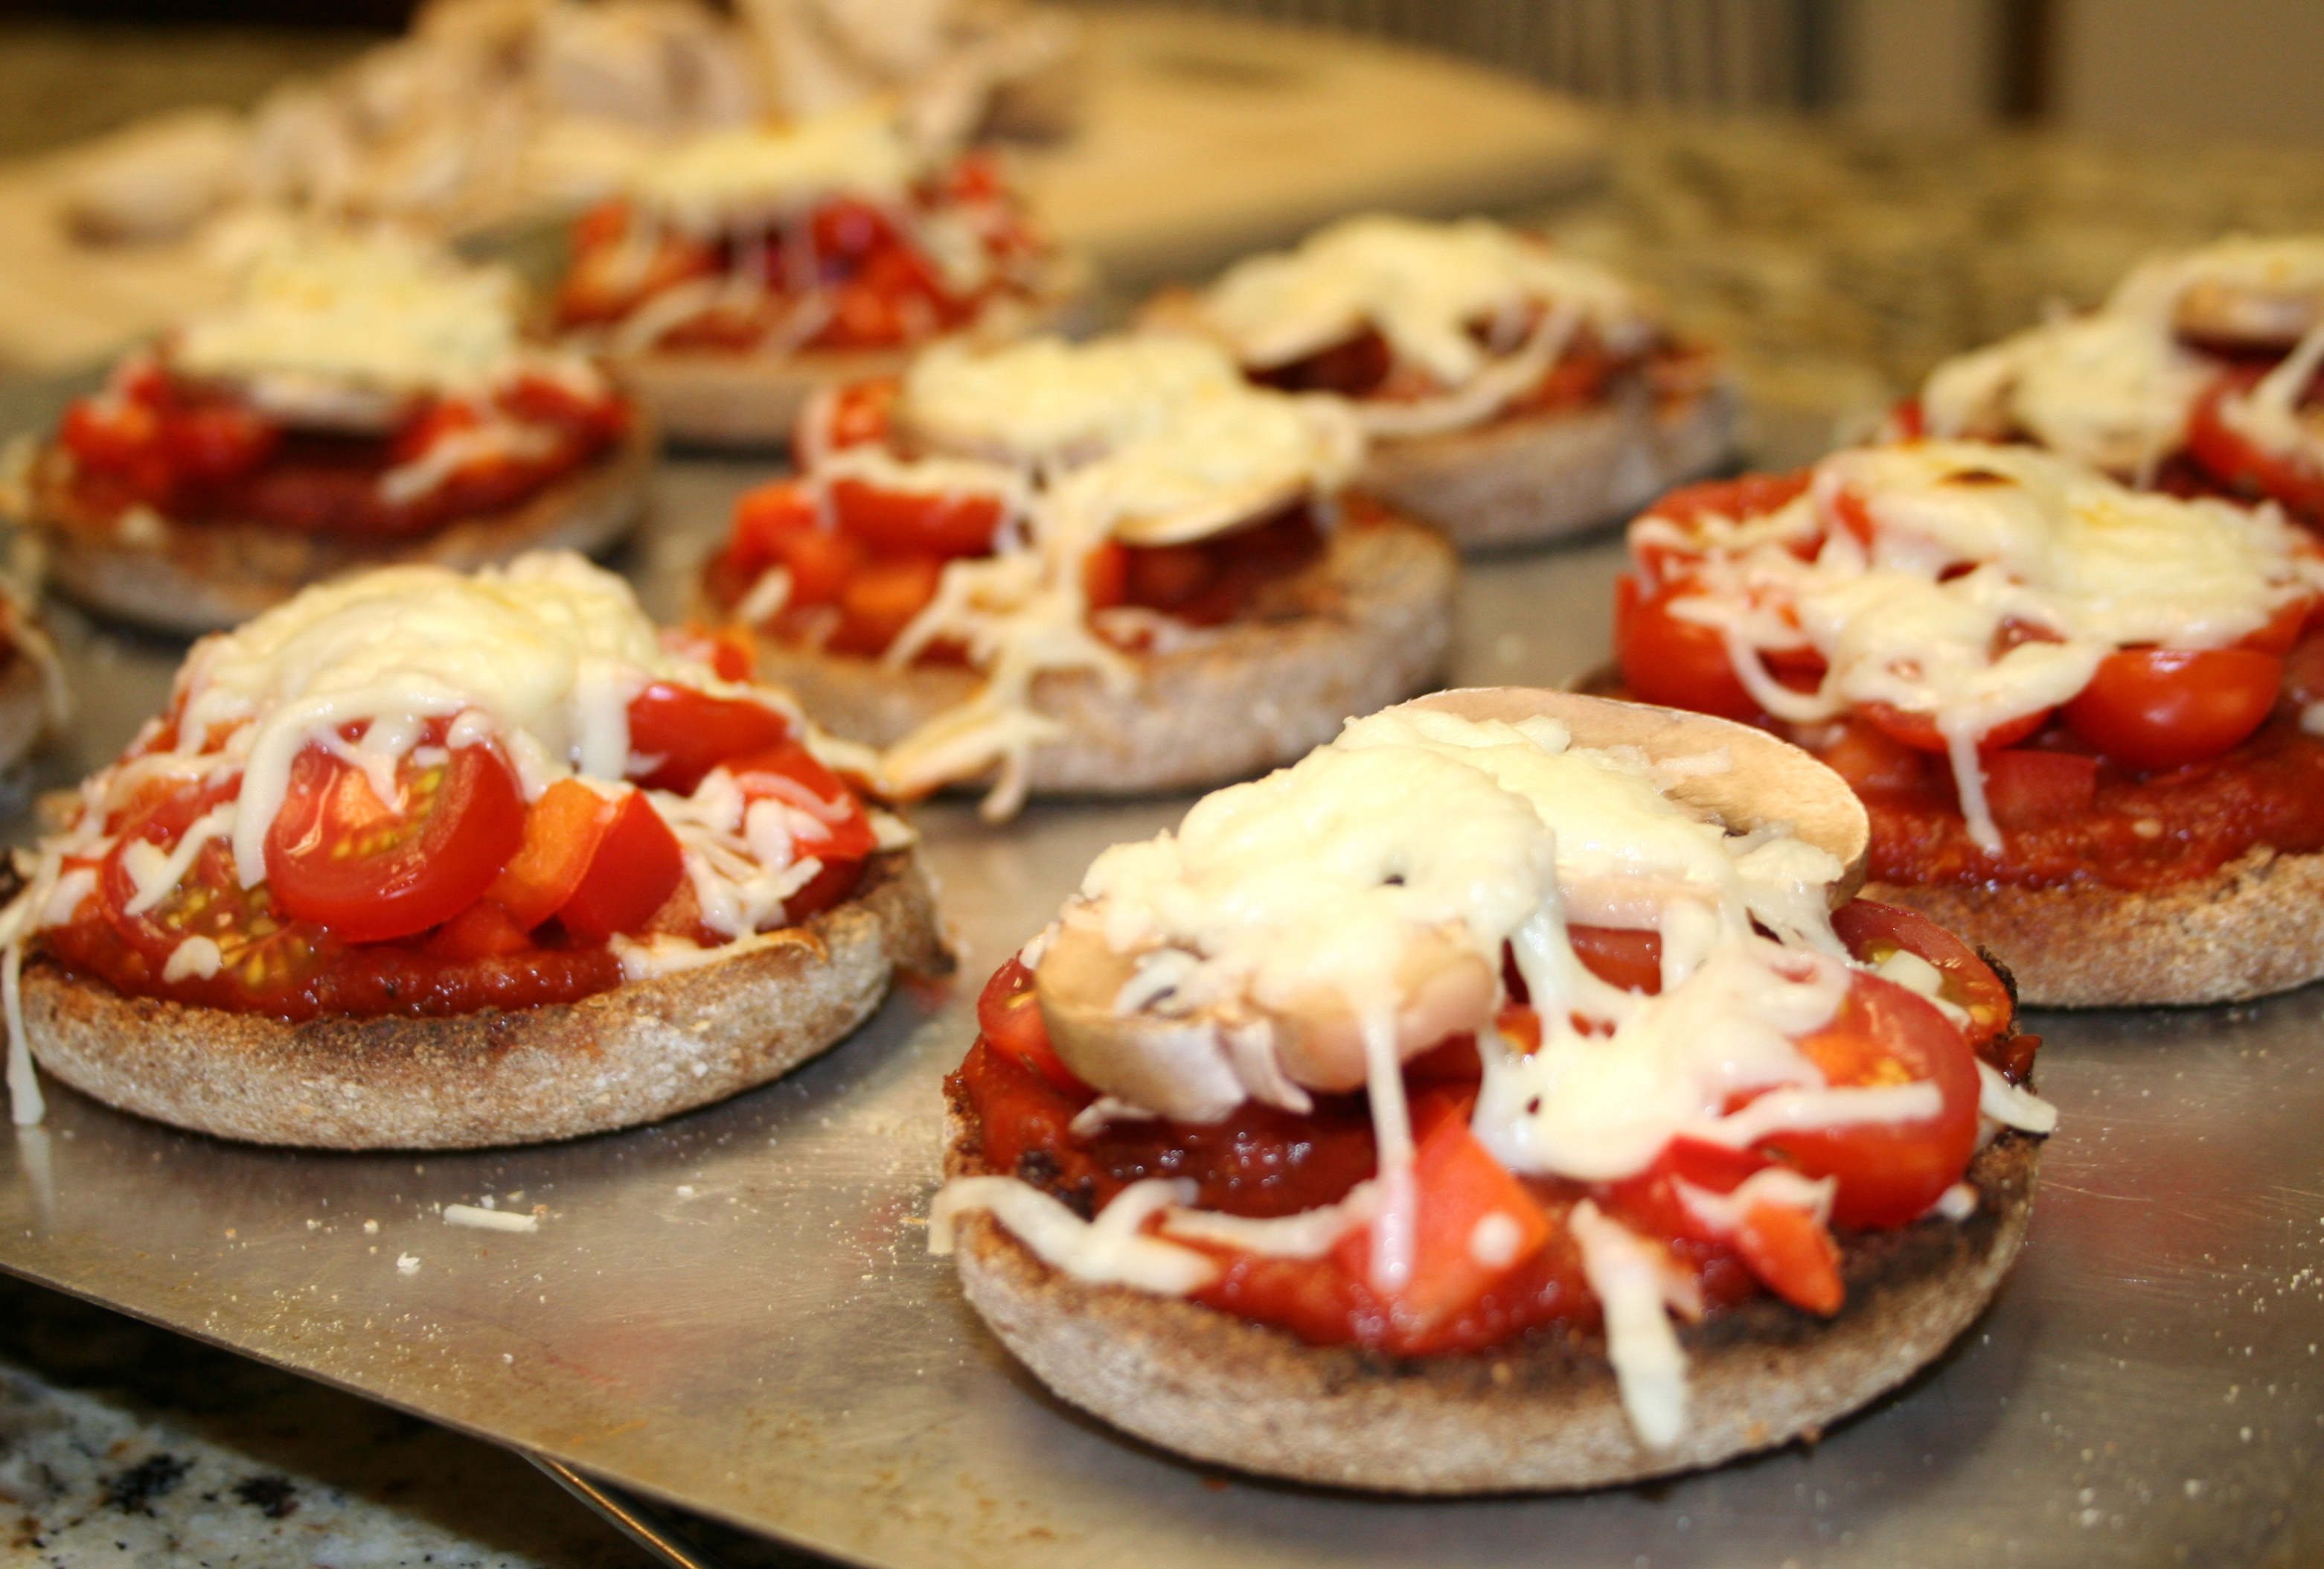 What to make when you dont feel like cooking english muffin place under broiler in oven or toaster oven until cheese is melted and toppings are warmed forumfinder Images